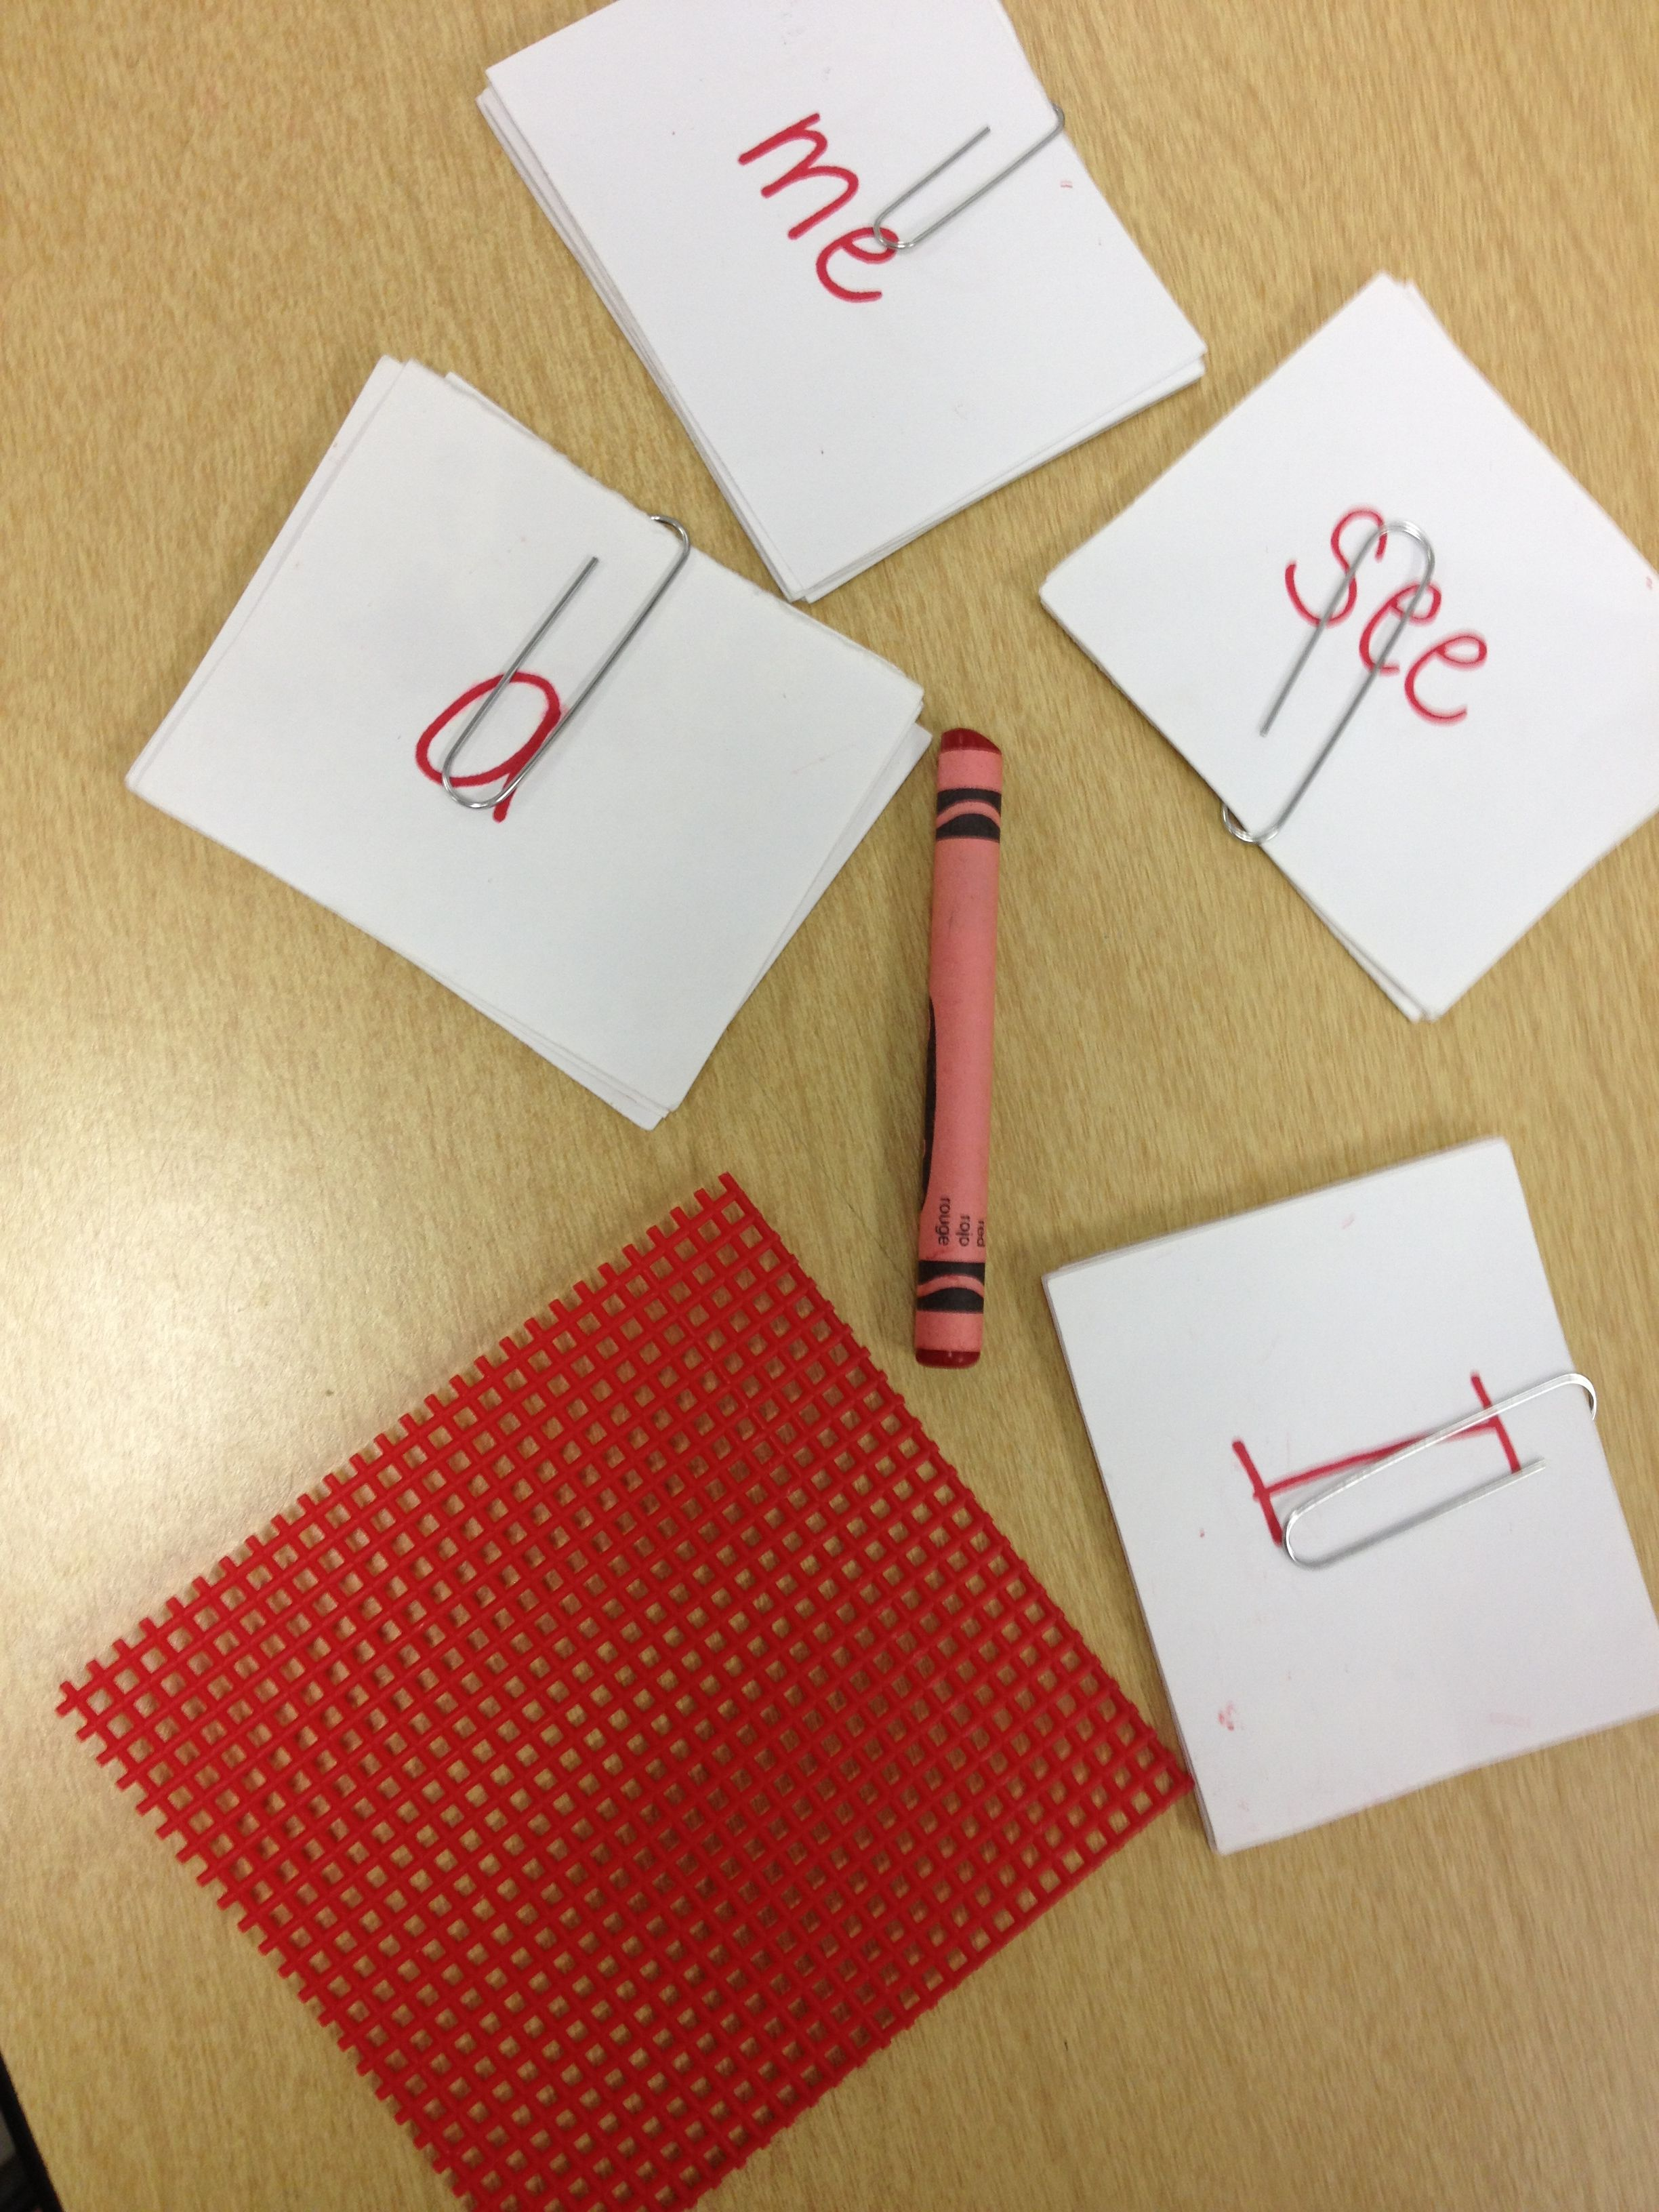 Red Word Method for learning sight words. Very interesting ...